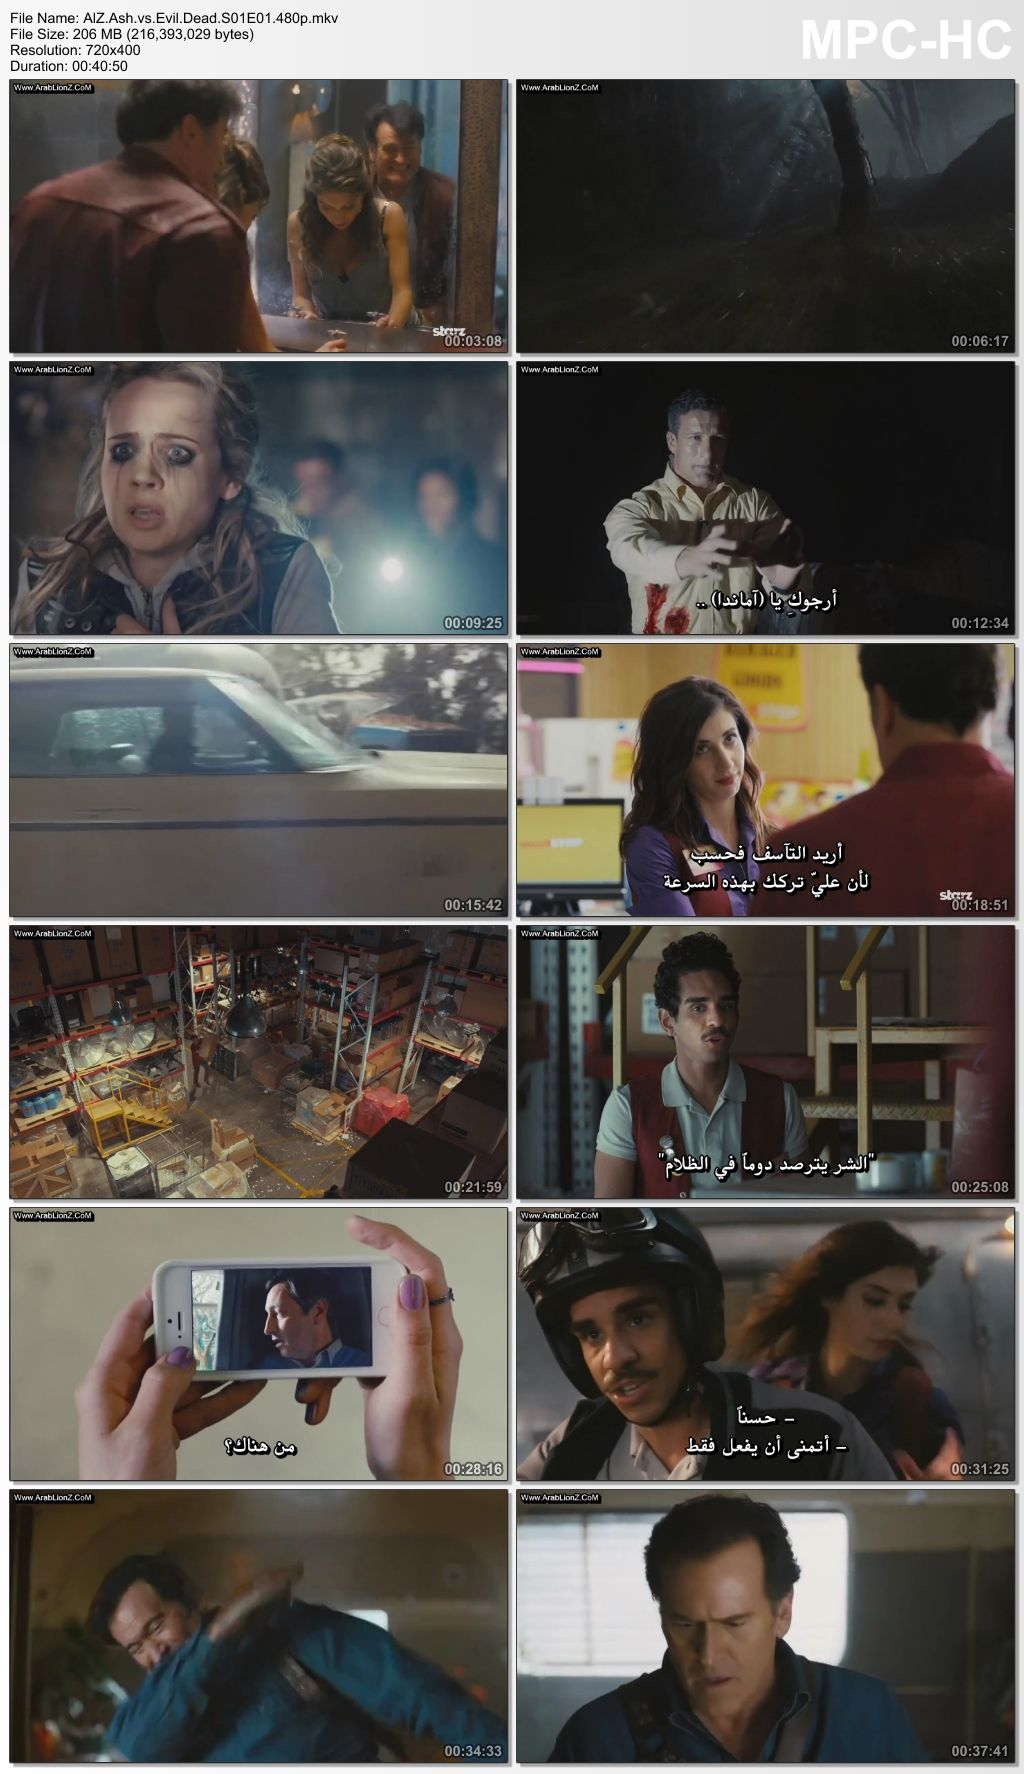 The Americans S01 Hdtv X264